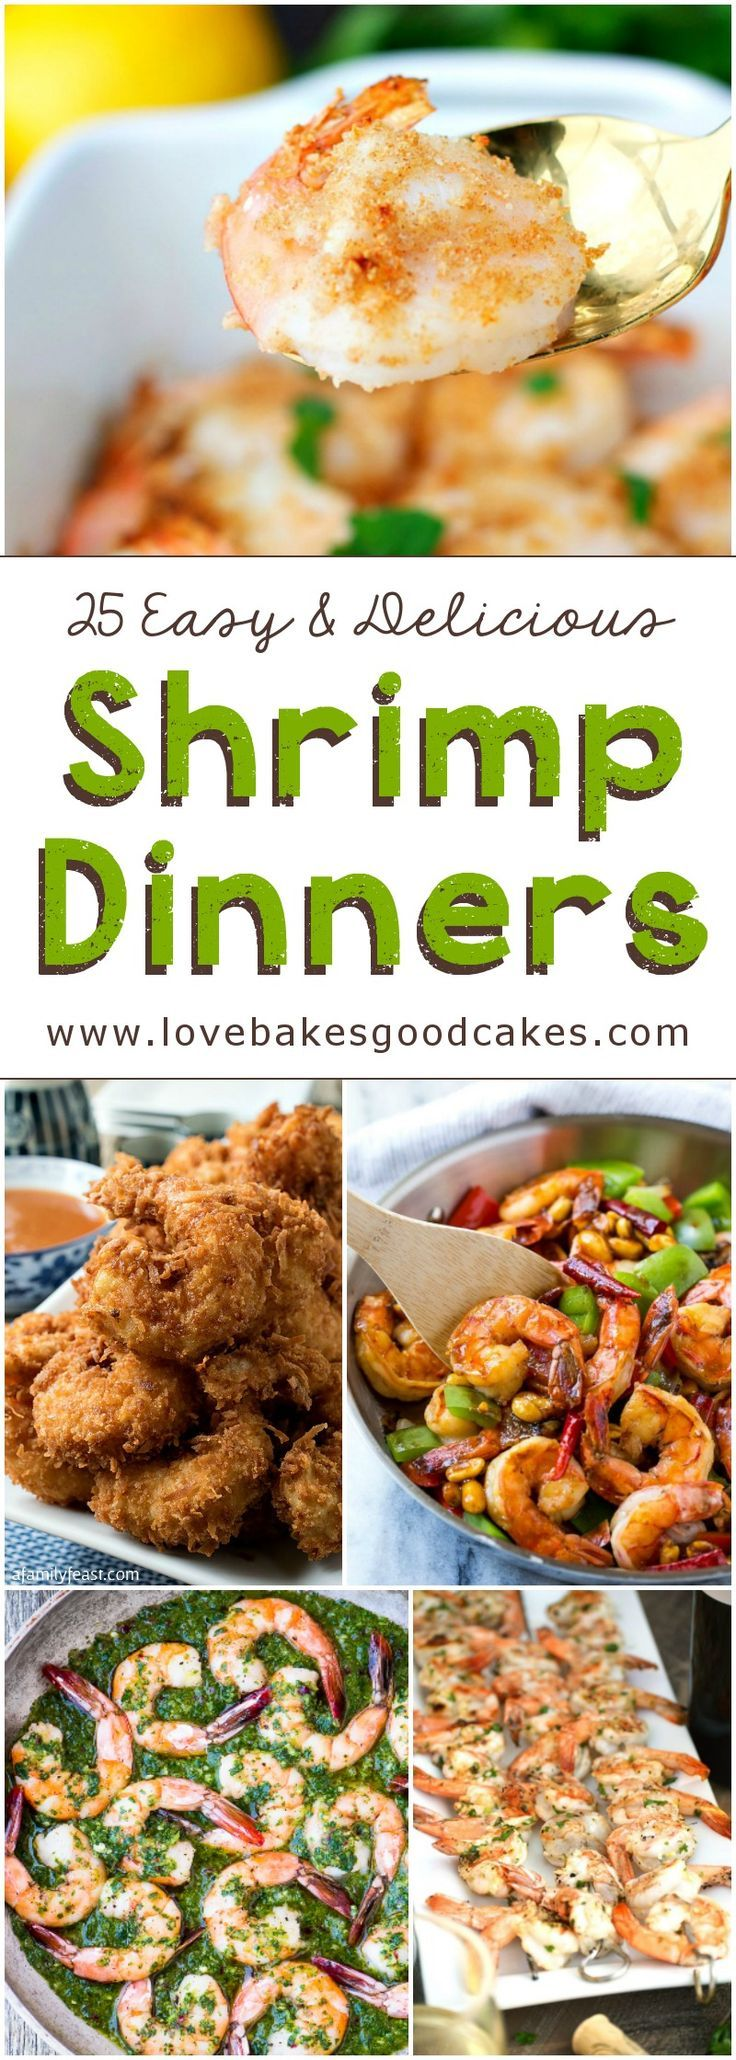 25 Easy and Delicious Shrimp Dinners